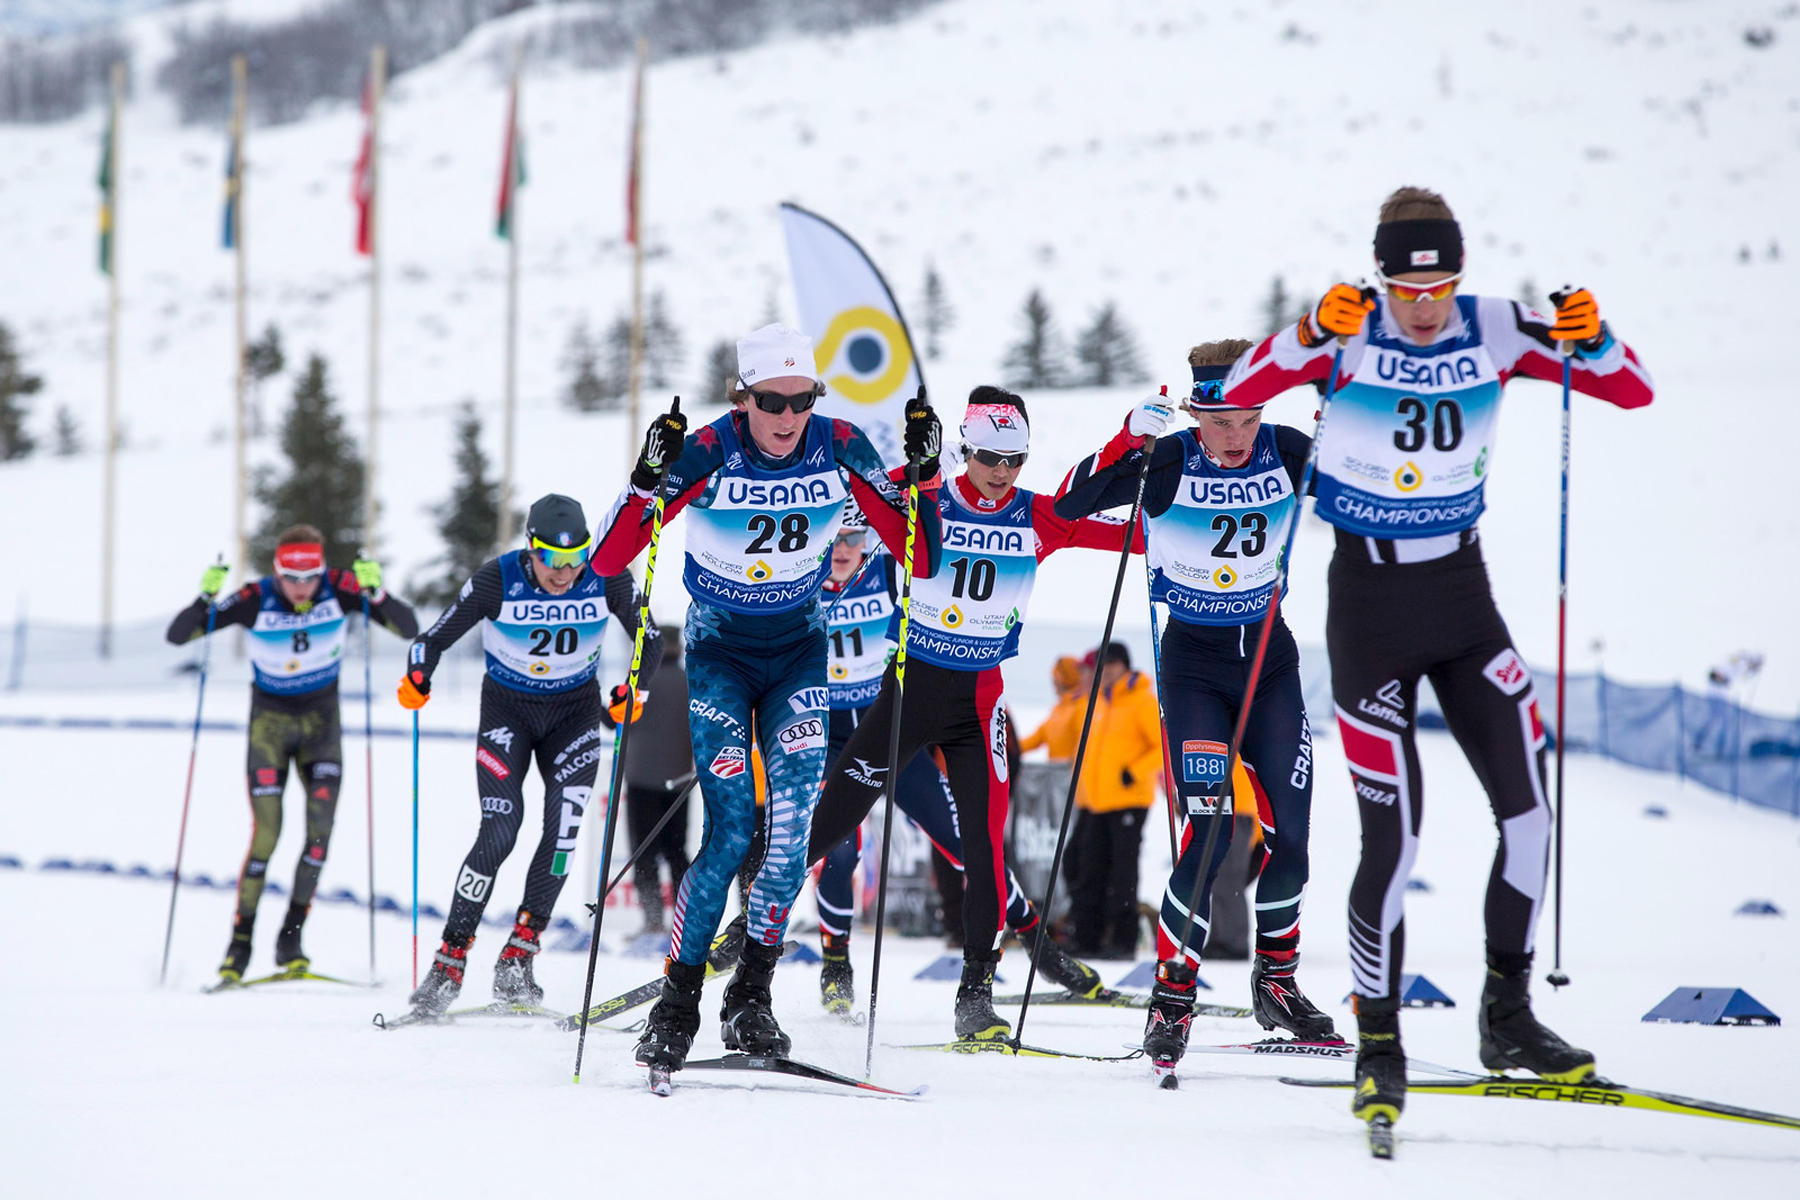 Nordic Combined Junior World Championships Criteria